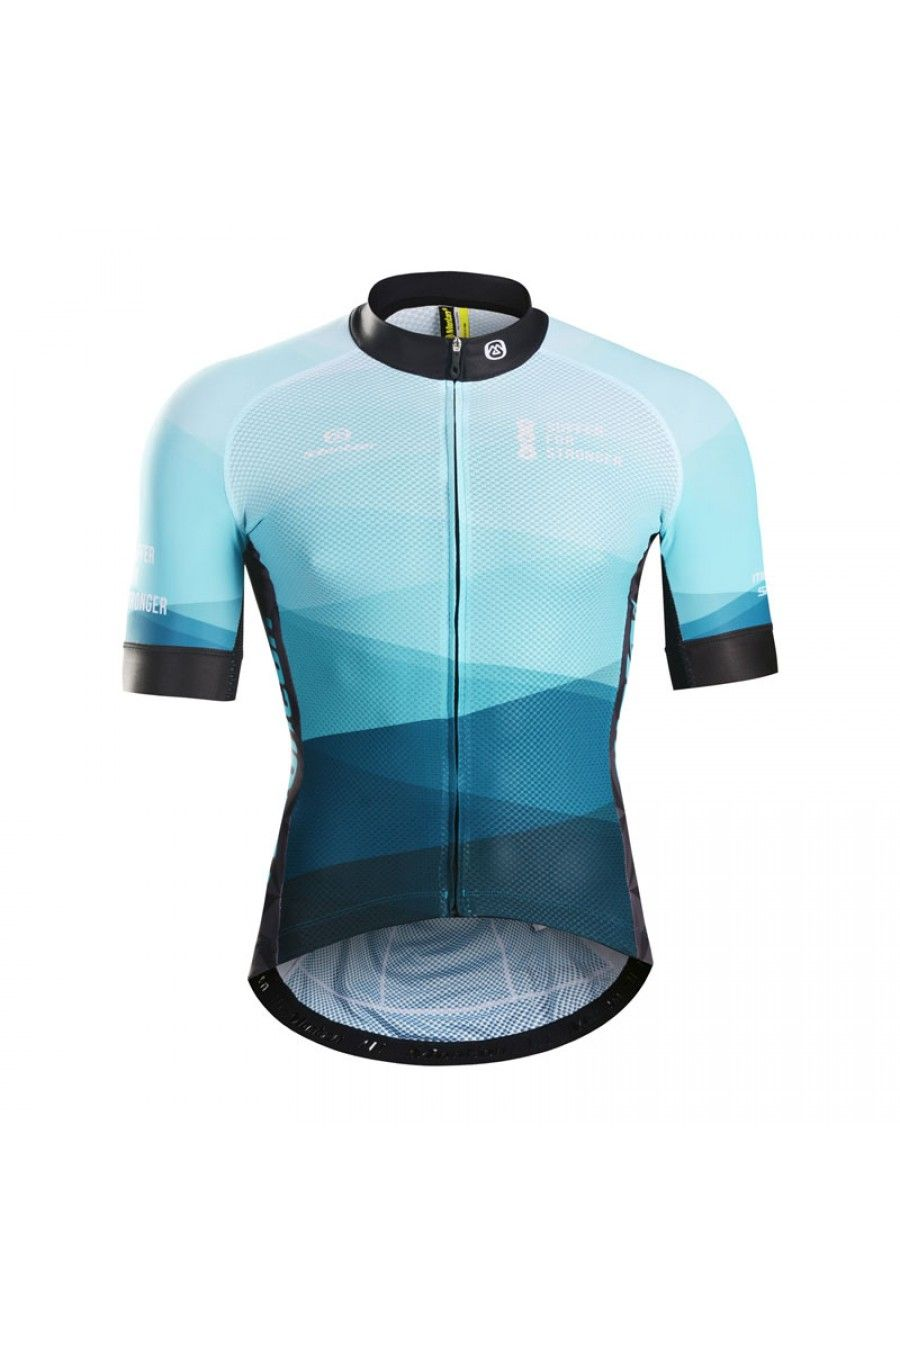 Monton 2016 Mens Road Cycling Jersey Aurora Cycling Outfit Cycling Jersey Design Cycling Design